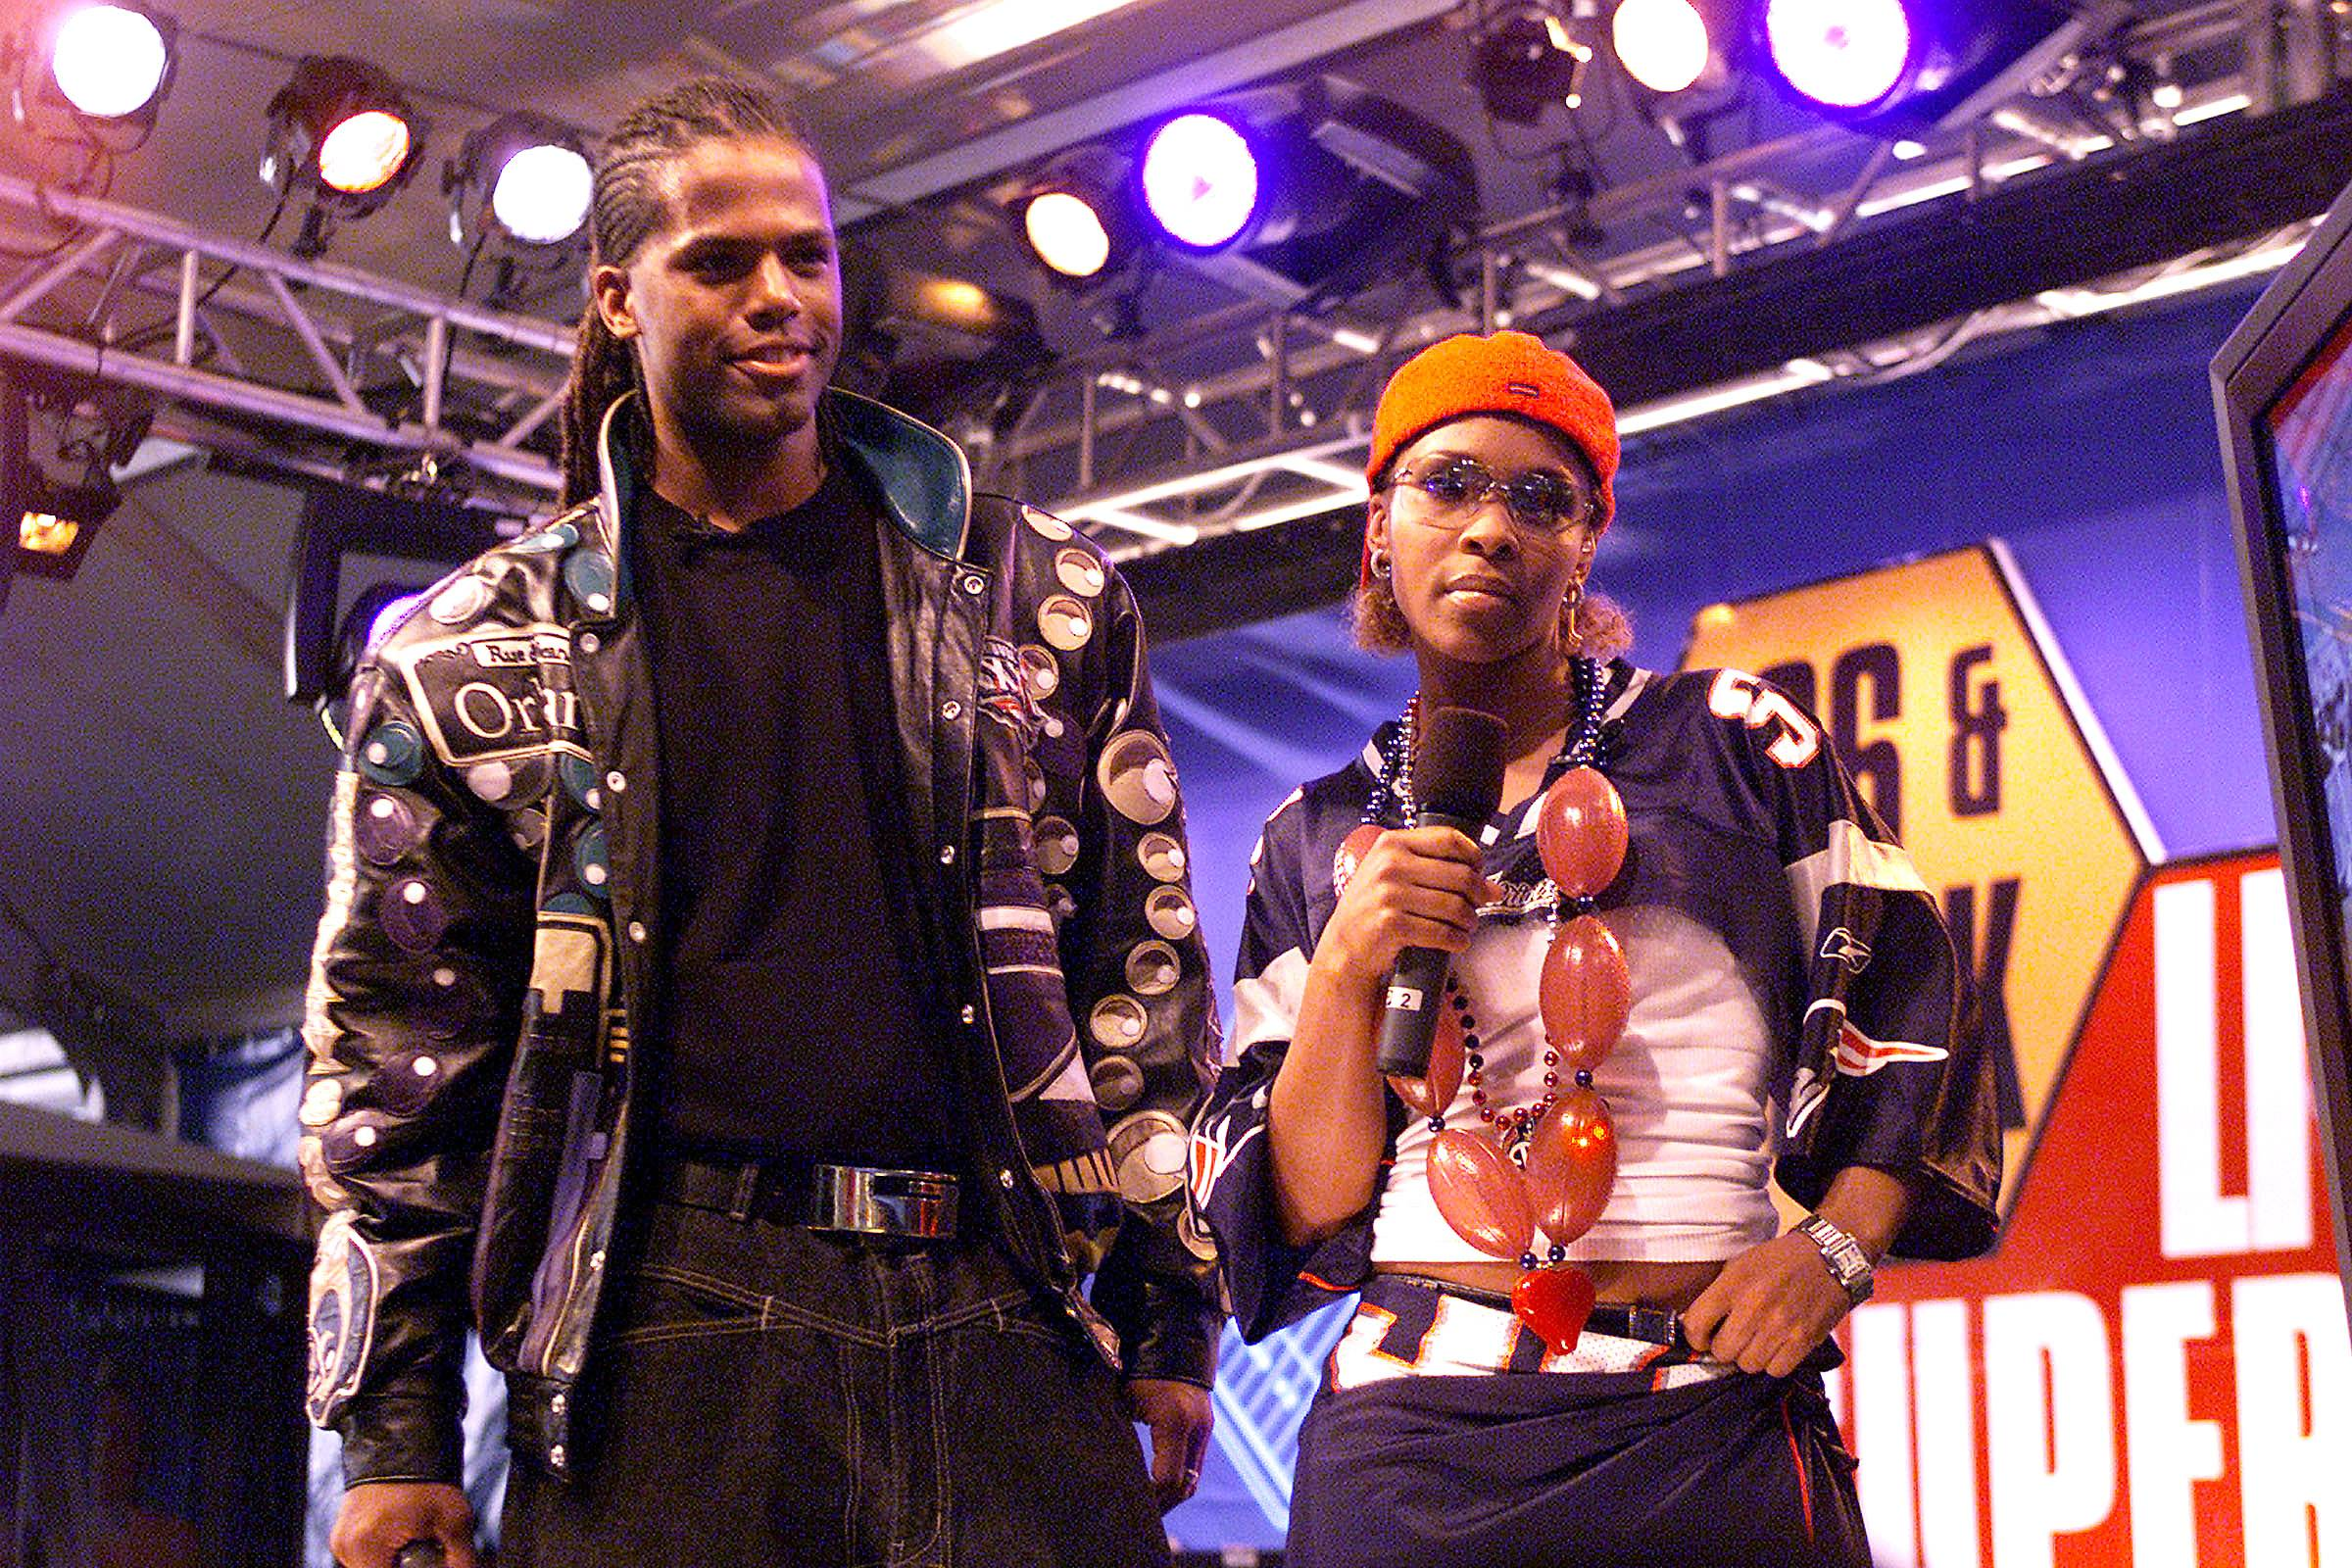 In the Beginning  - A.J. Calloway and Free were the original hosts of BET's 106 & Park when the show launched on Sept. 11, 2000. Back in the day, the show was actually shot at a studio on 106th Street and Park Avenue in East Harlem. (Photo by Frank Micelotta/ImageDirect)